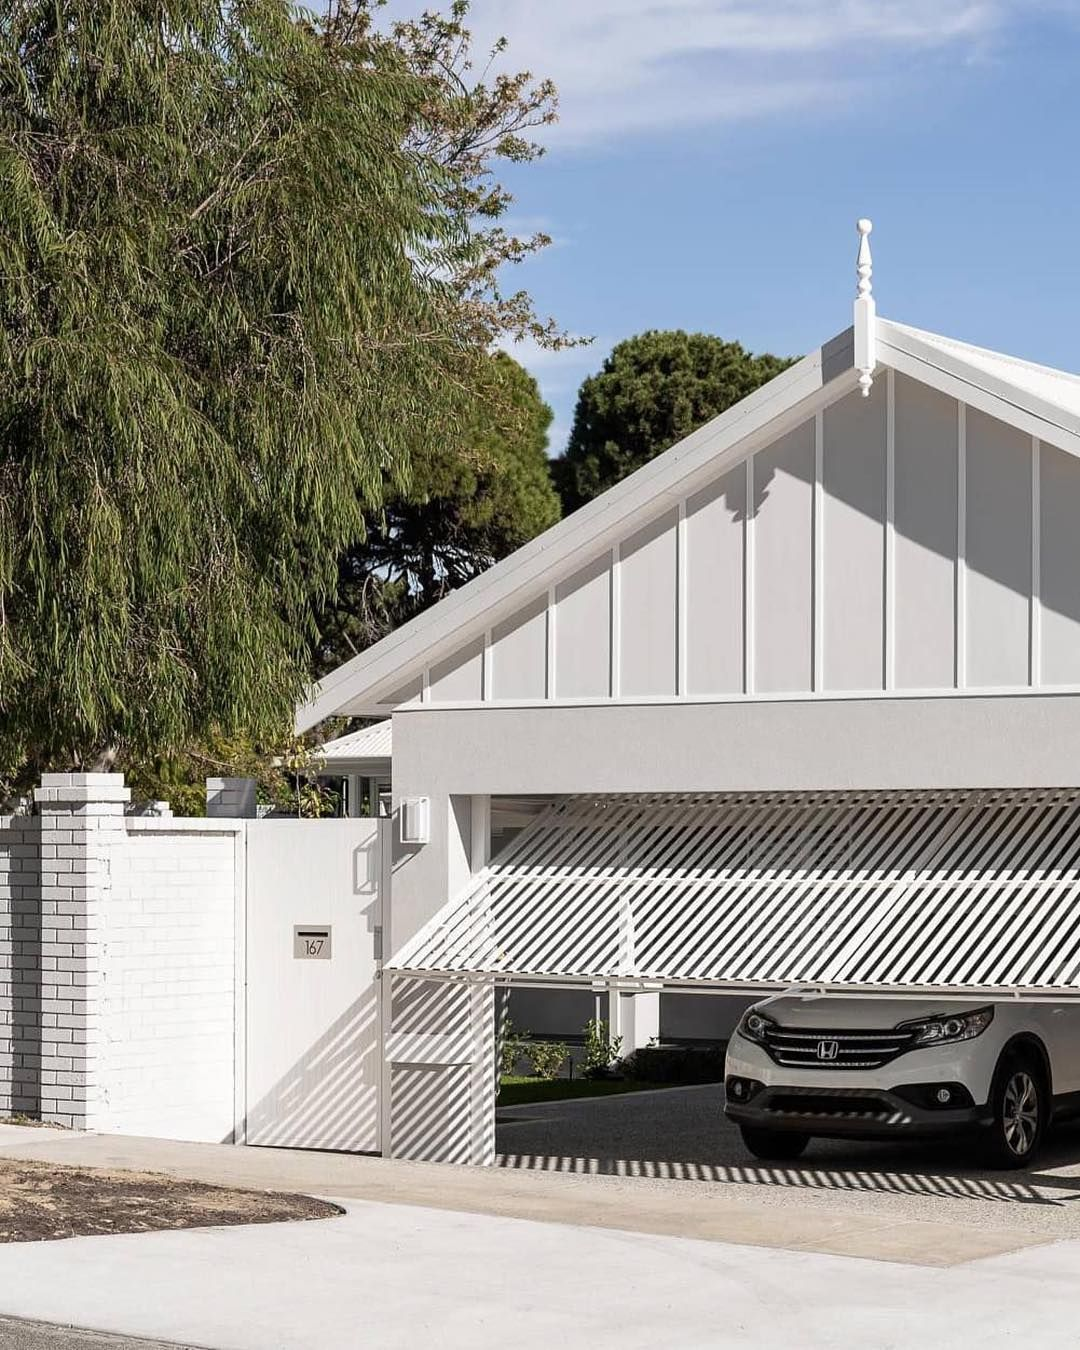 Now This Is A Carport I Can Get Behind You D Be Forgiven For Thinking This Was A Garage A Fantastic Use In 2020 Garage Door Design Carport Designs Building A Carport